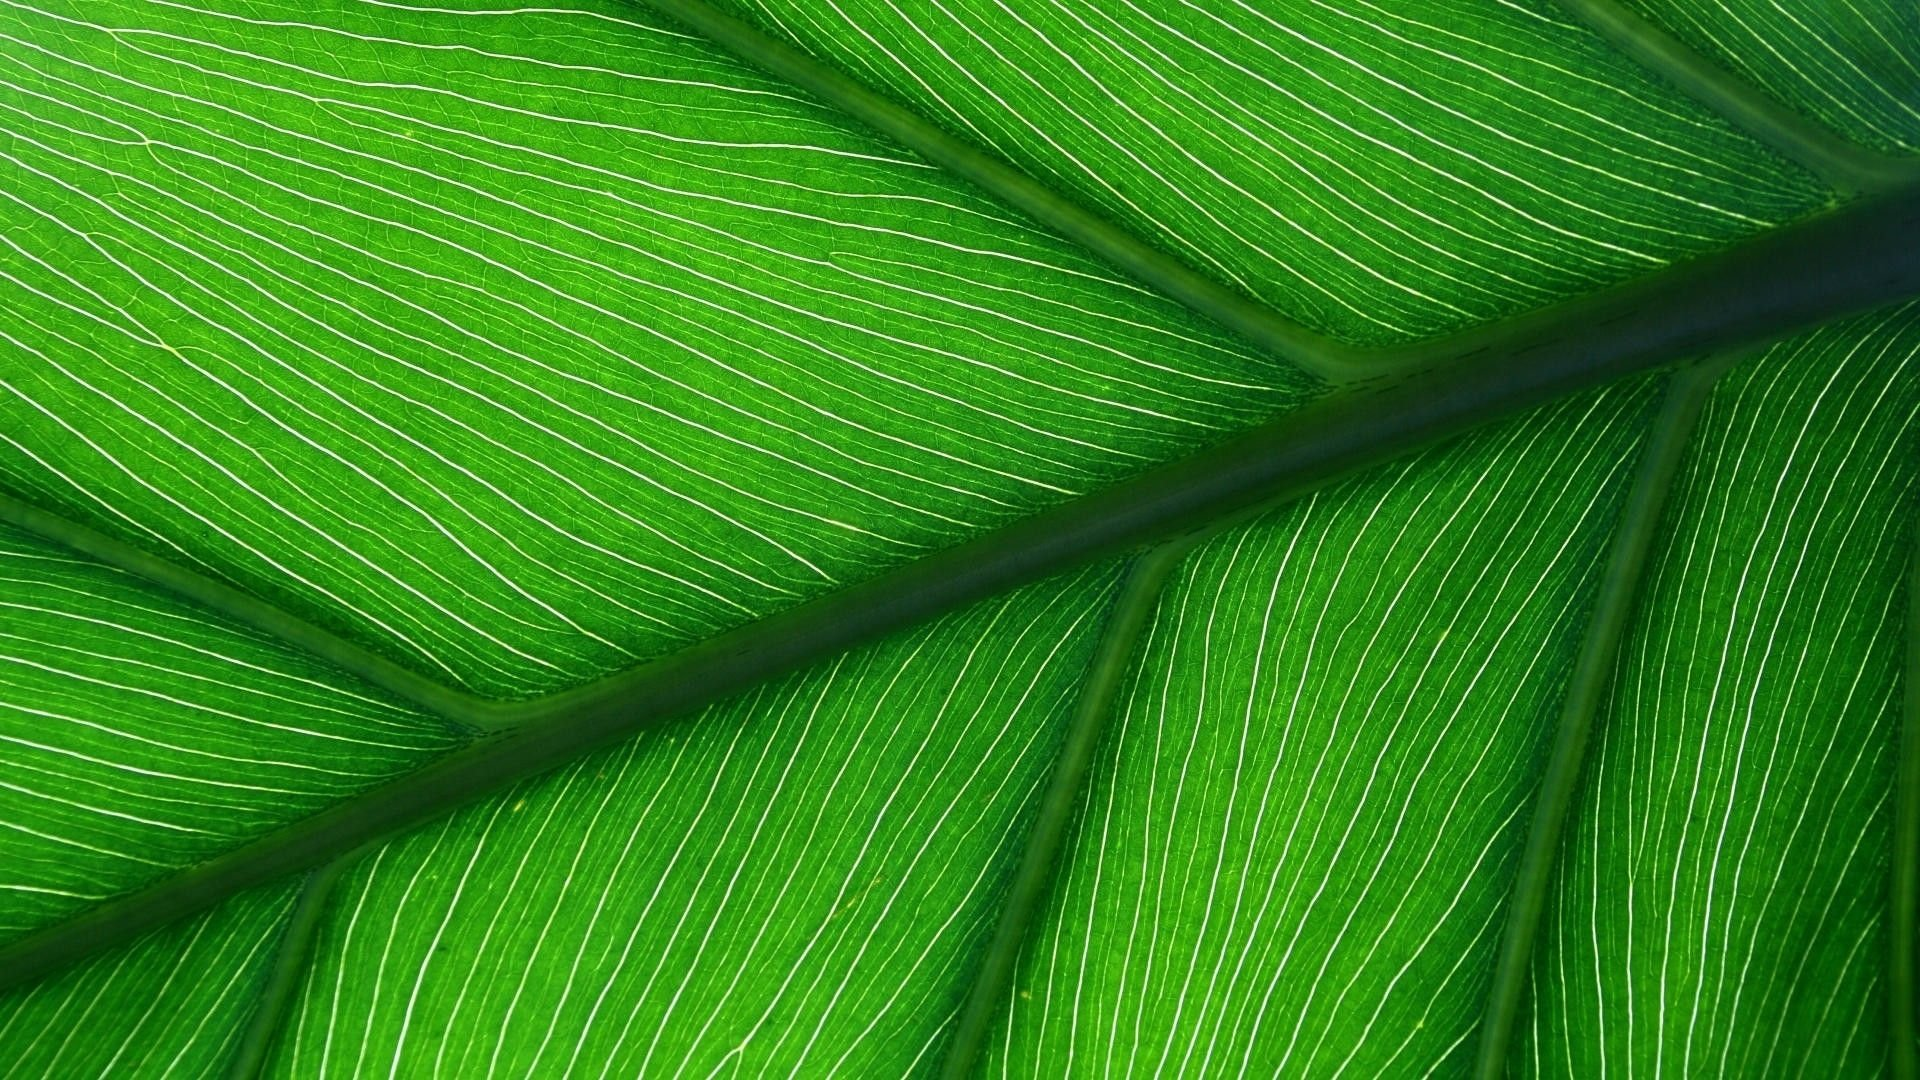 Green Aesthetic Wallpaper Free Download